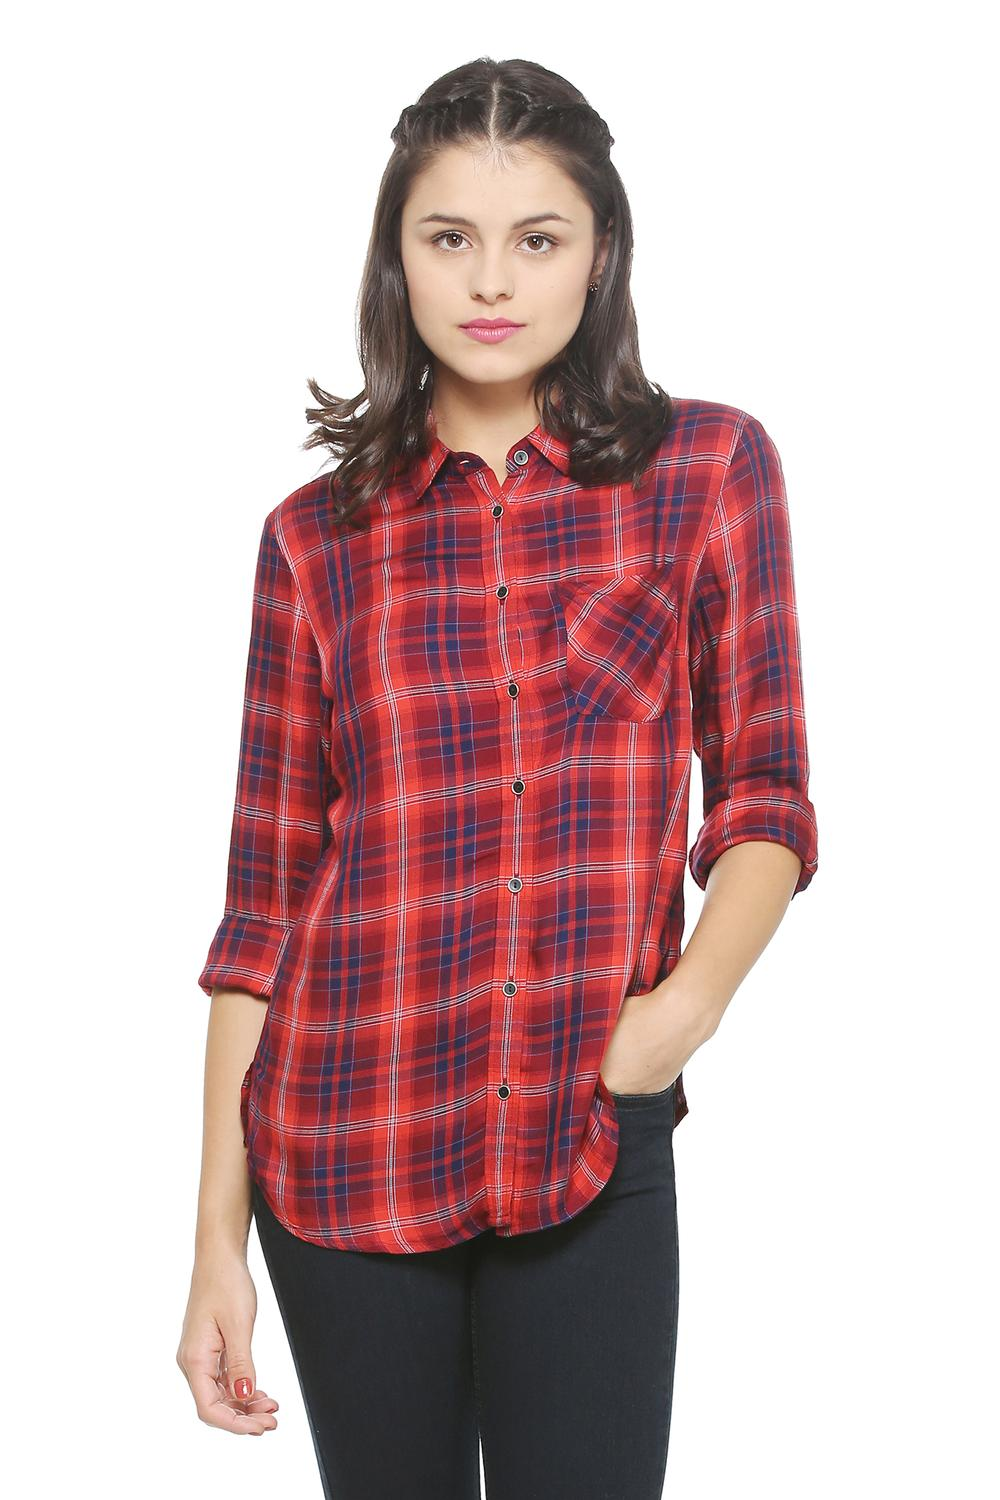 67ed1c829db5 Solly Shirts & Blouses, Allen Solly Red Shirt for Women at Allensolly.com